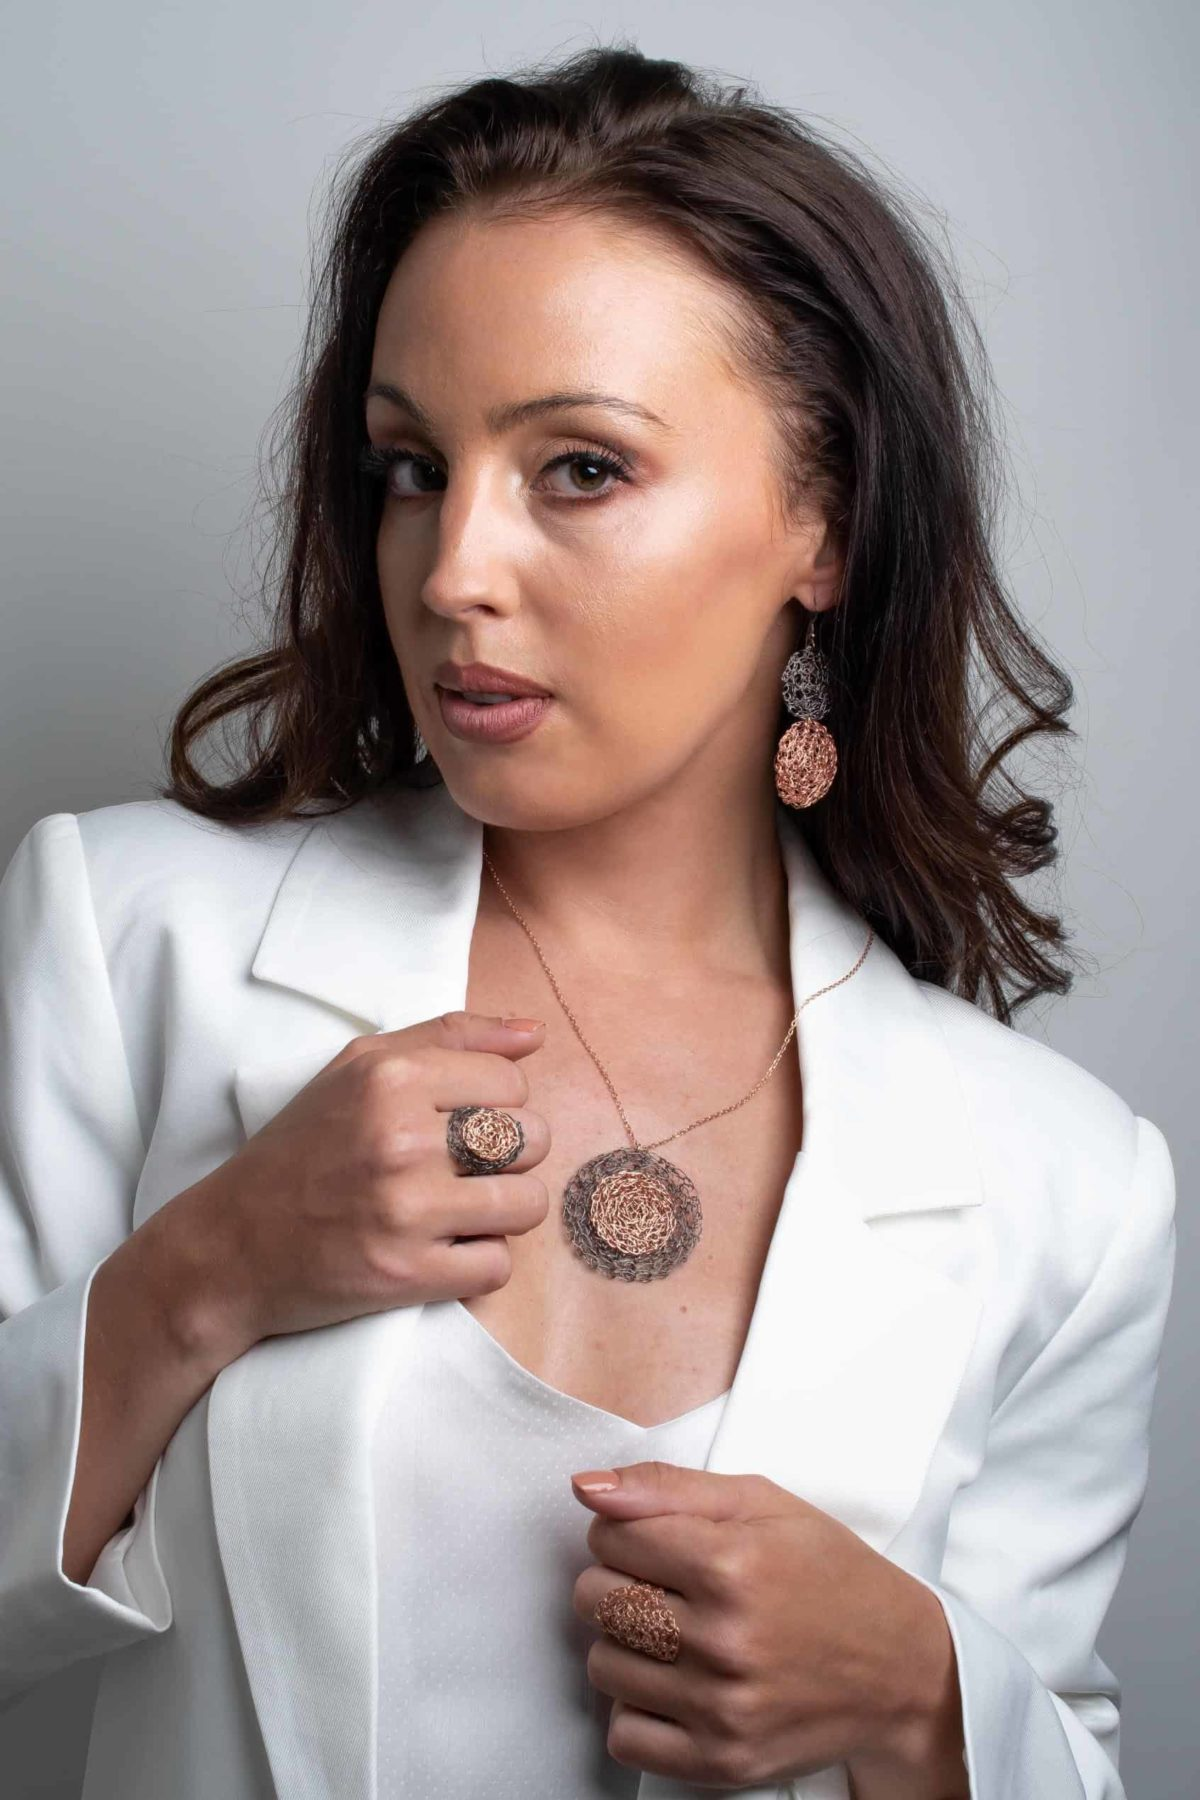 white model wearing rose gold jewelry